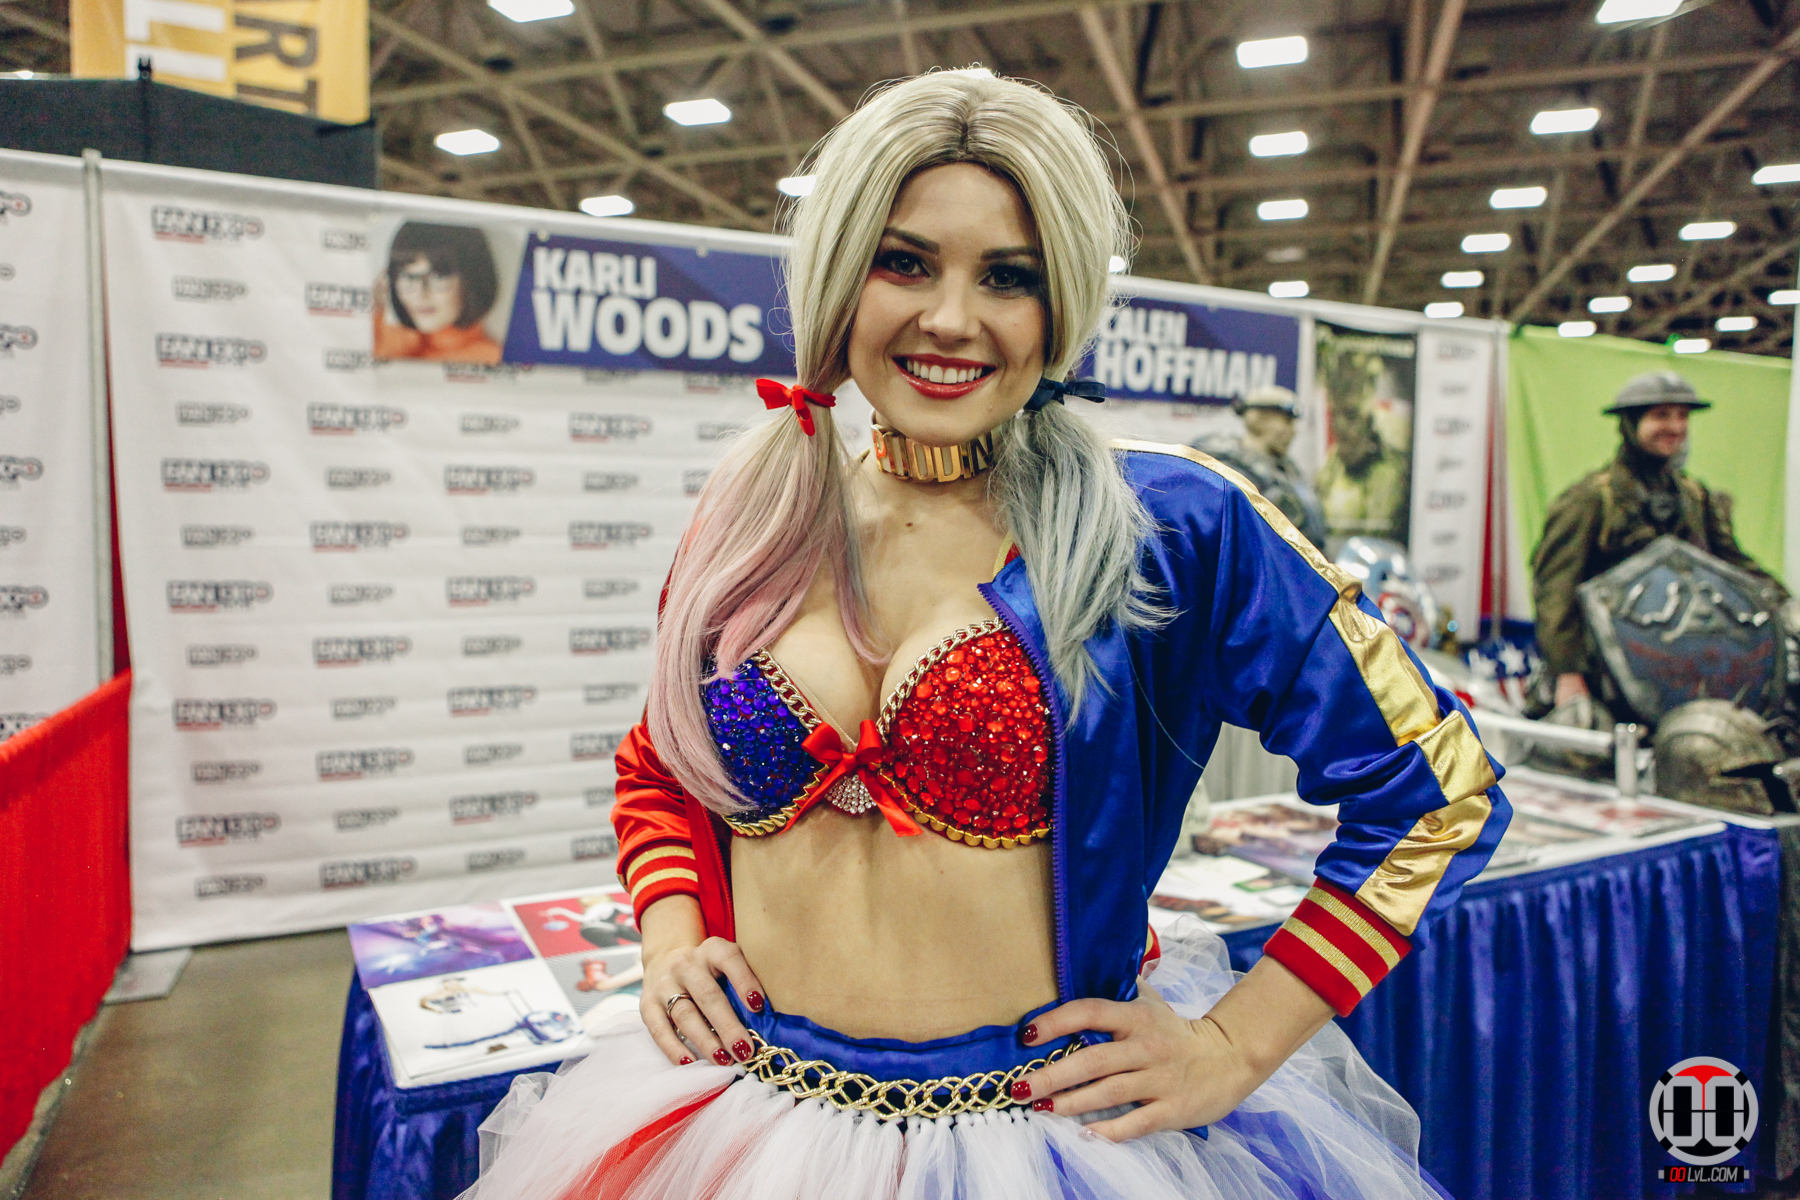 Fan-Expo-Dallas-17-2-36